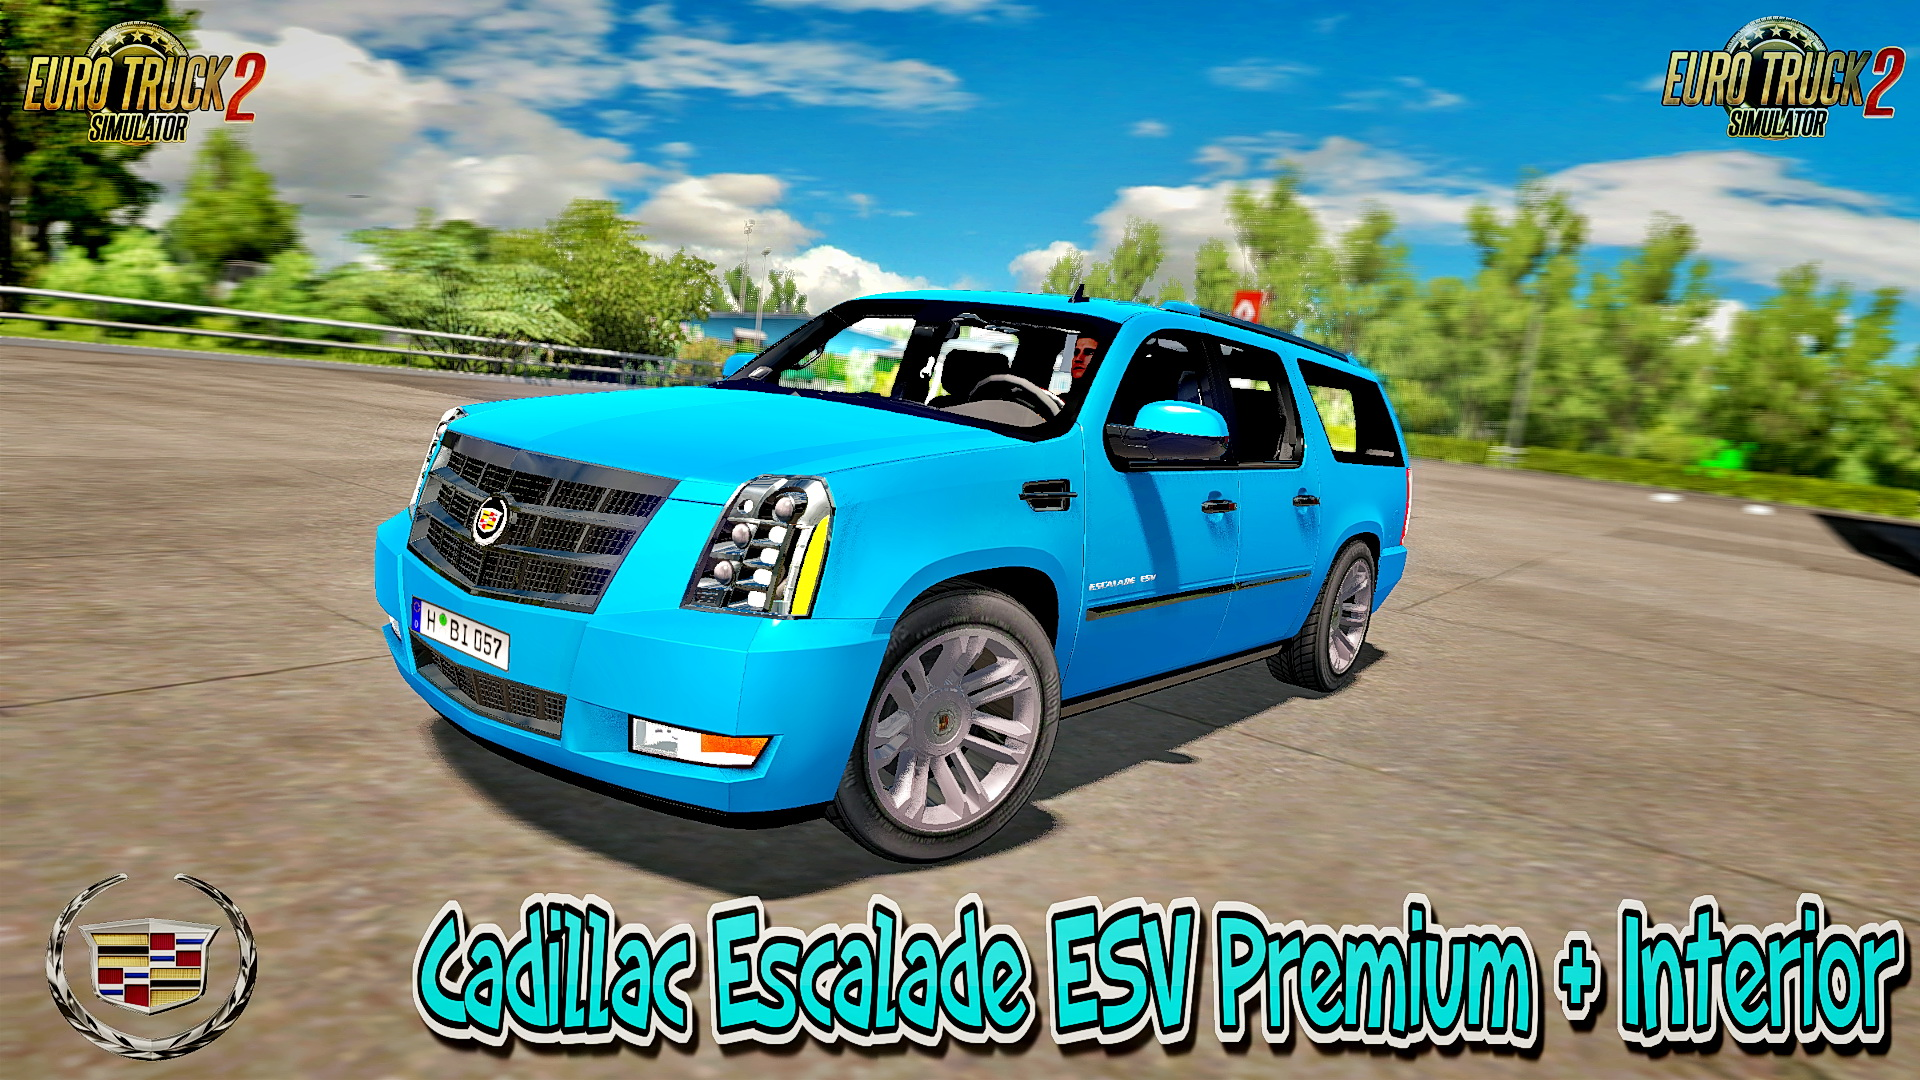 Cadillac Escalade ESV Premium + Interior (Beta Version) (1.27.x)